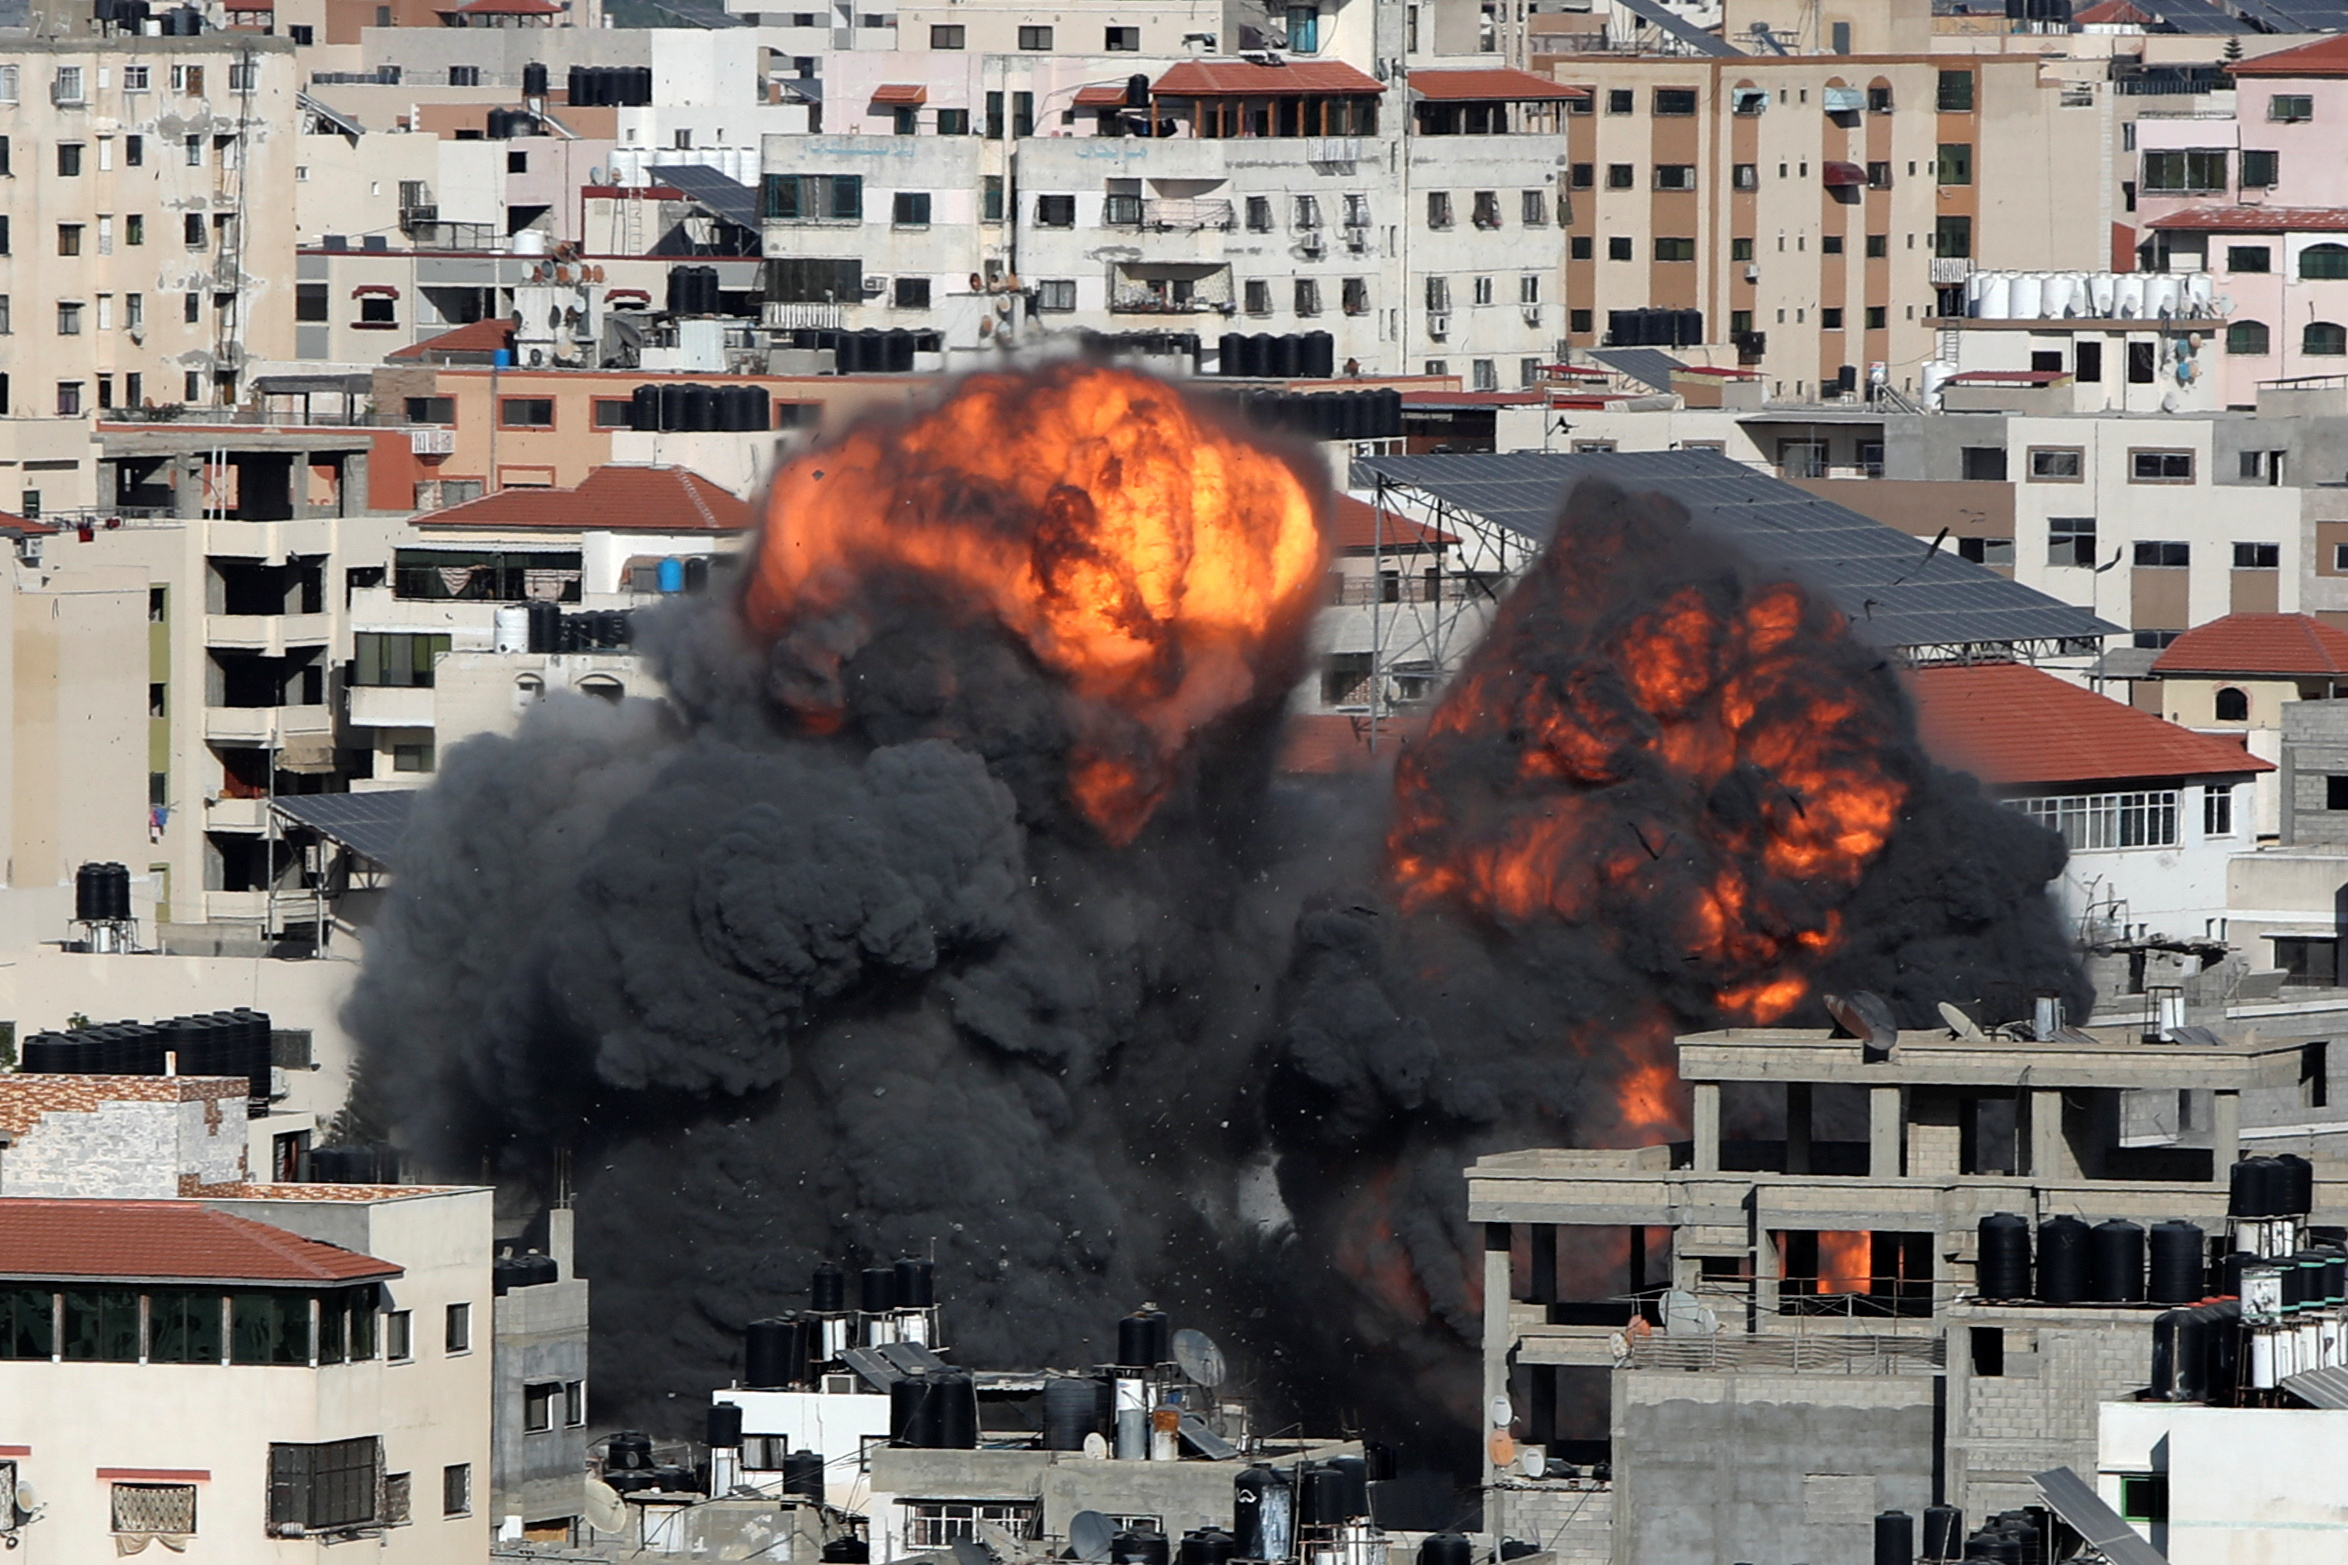 Smoke and flames rise during an Israeli air strike, amid a flare-up of Israeli-Palestinian violence, in Gaza City May 14, 2021. REUTERS/Mohammed Salem